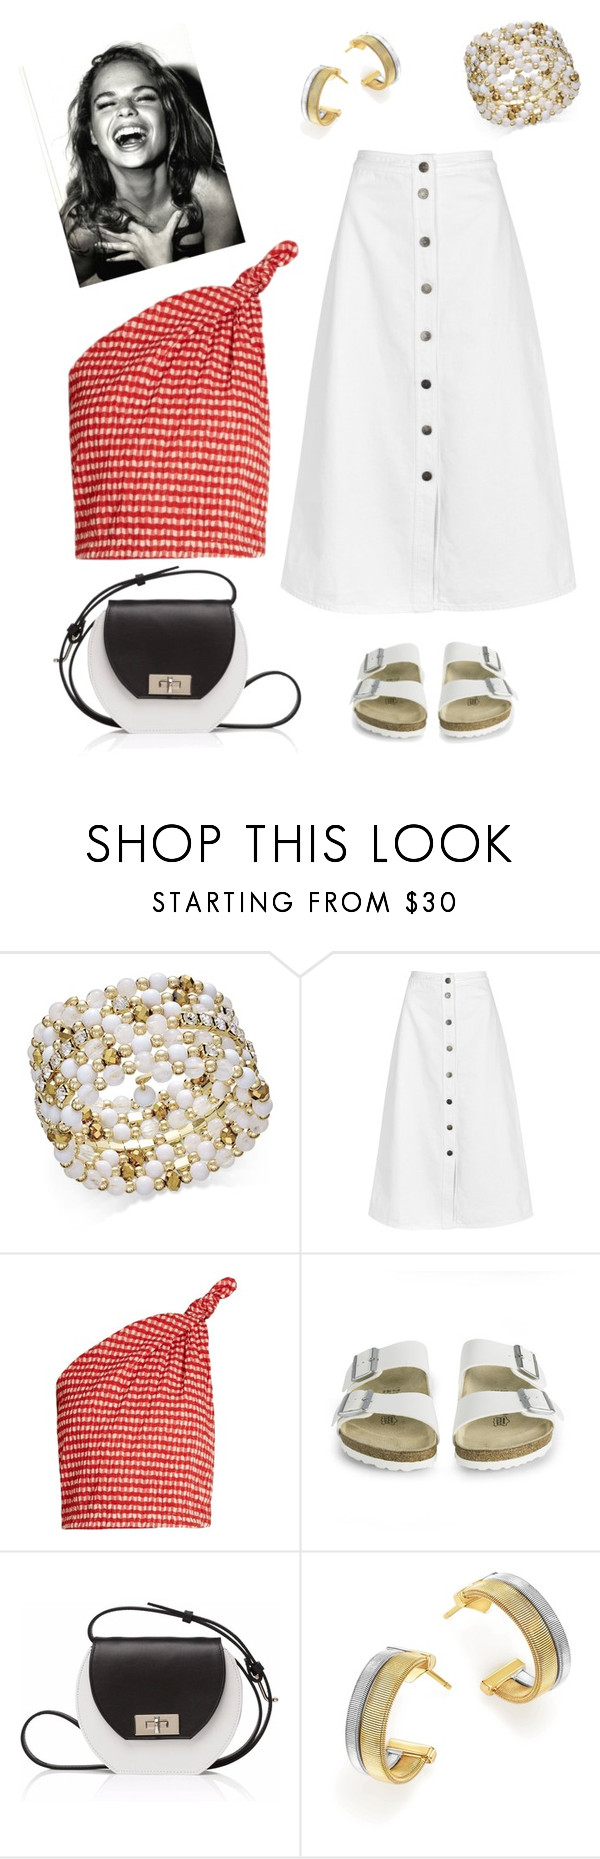 """Vichy."" by schenonek ❤ liked on Polyvore featuring INC International Concepts, M.i.h Jeans, Rosie Assoulin, Birkenstock, Joanna Maxham and Marco Bicego"